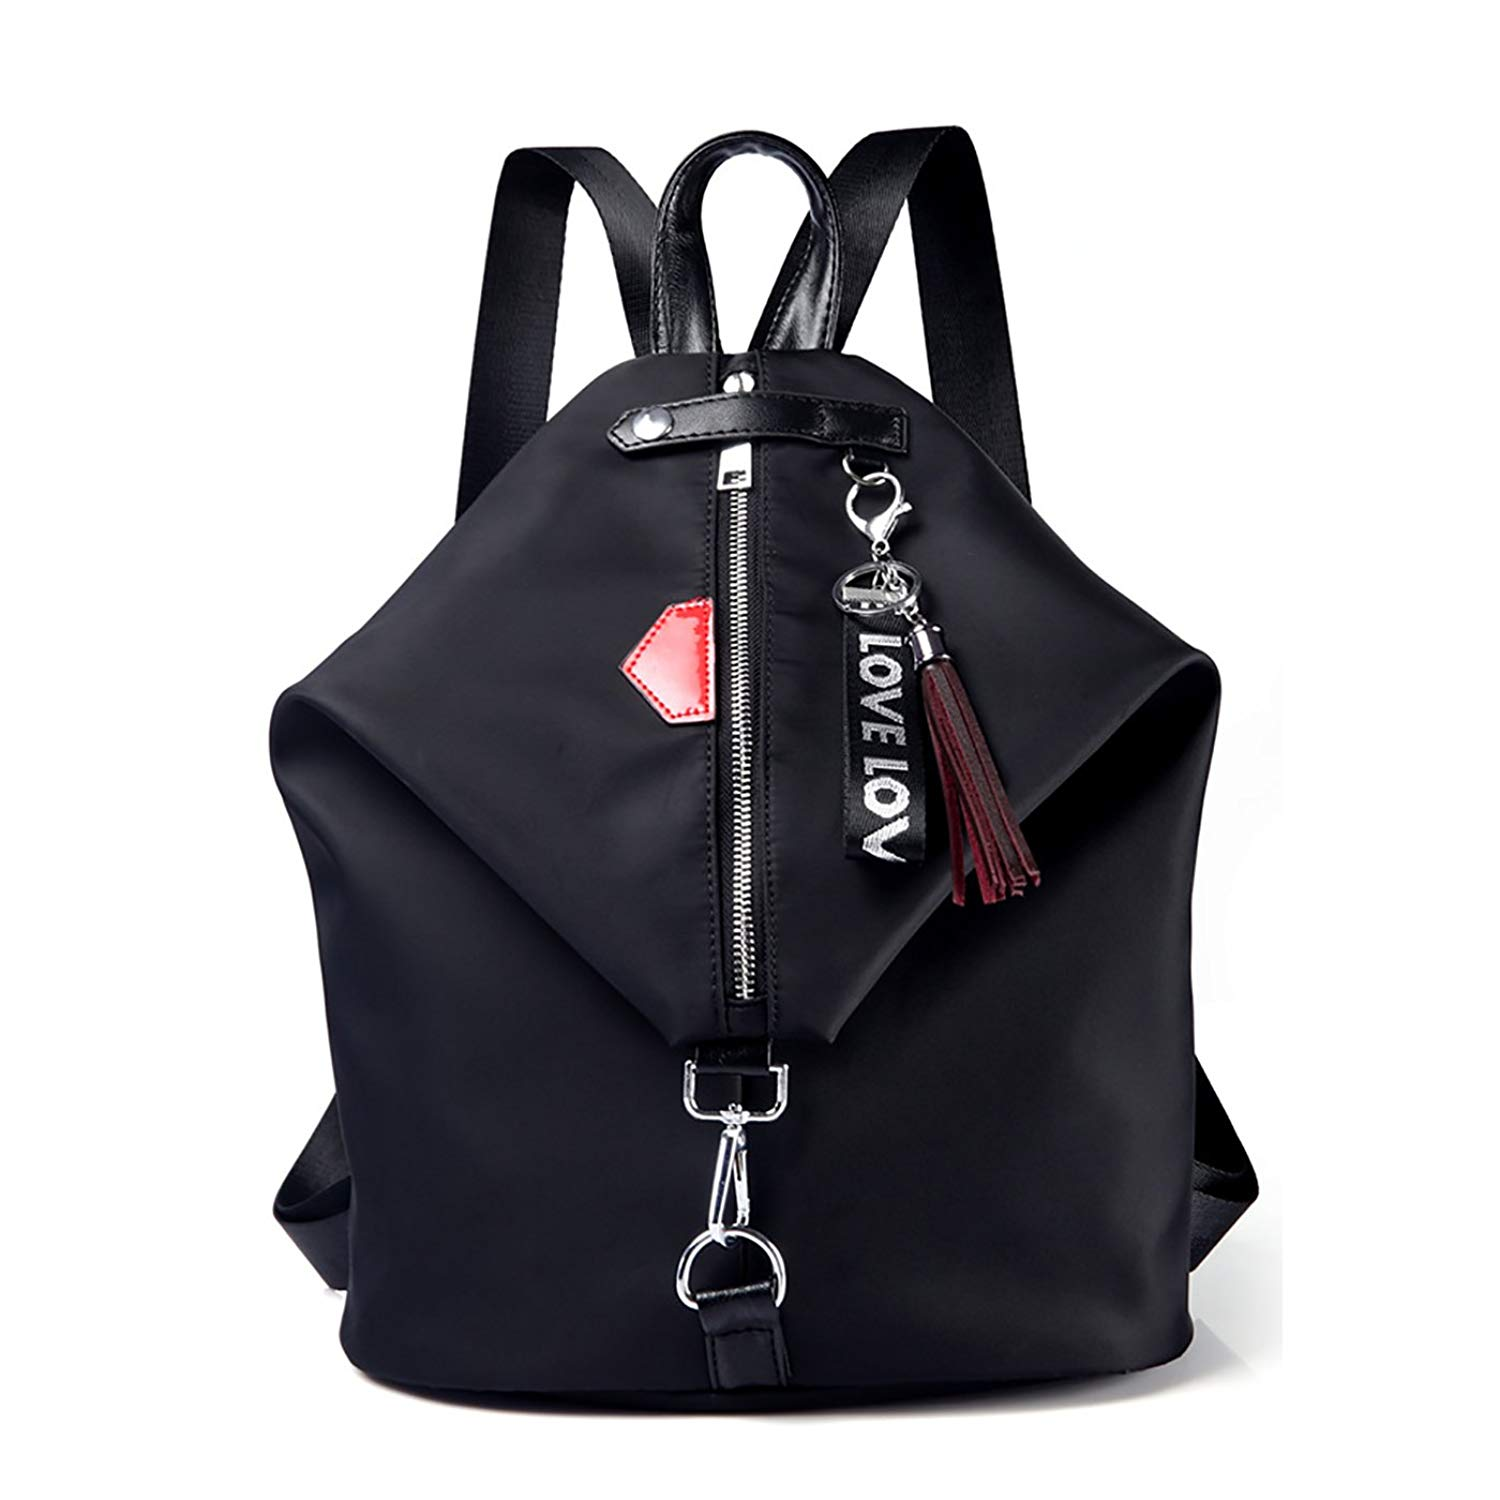 abfd3b13e86f Cheap Blank Backpacks For Embroidery, find Blank Backpacks For ...